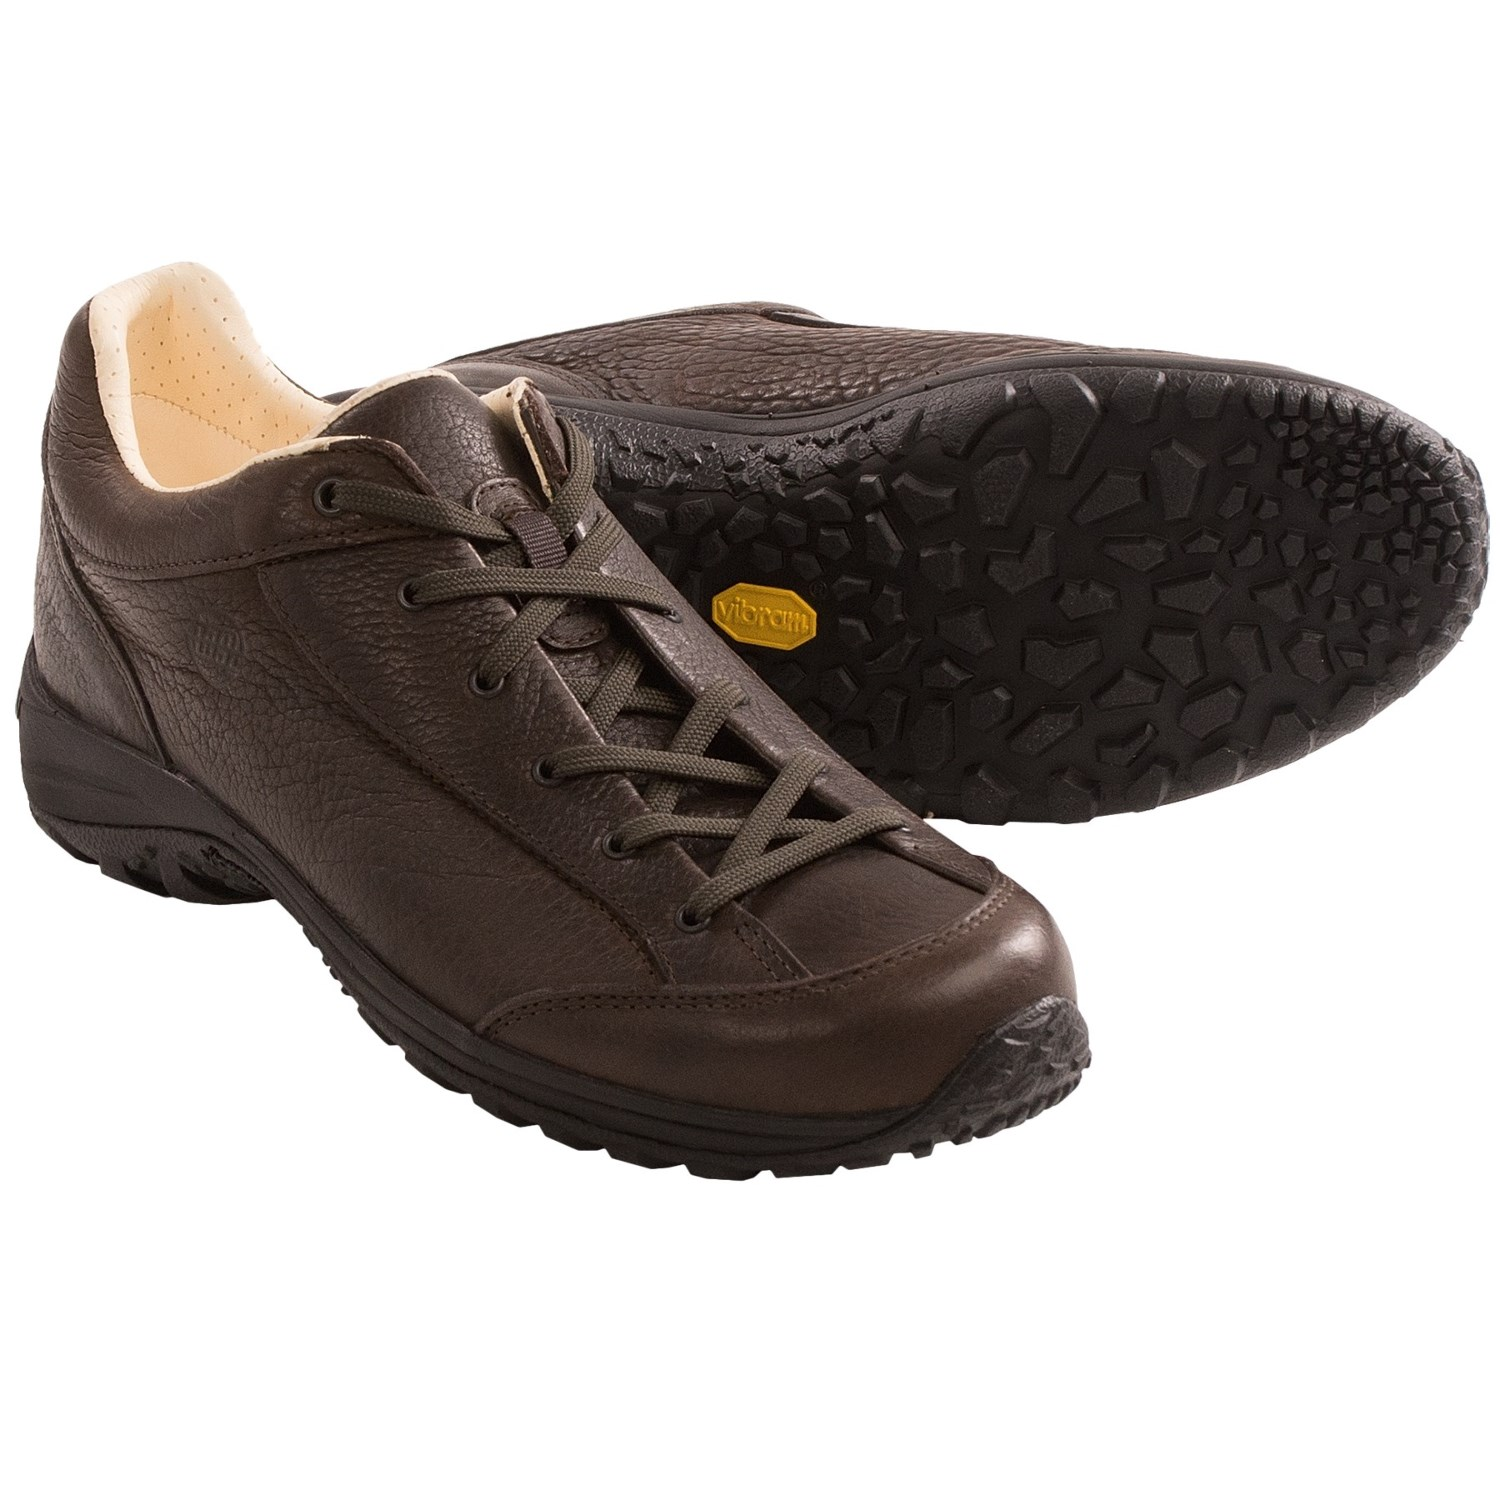 Hanwag Rombuk Trail Shoes (For Women) in Chestnut/Marone